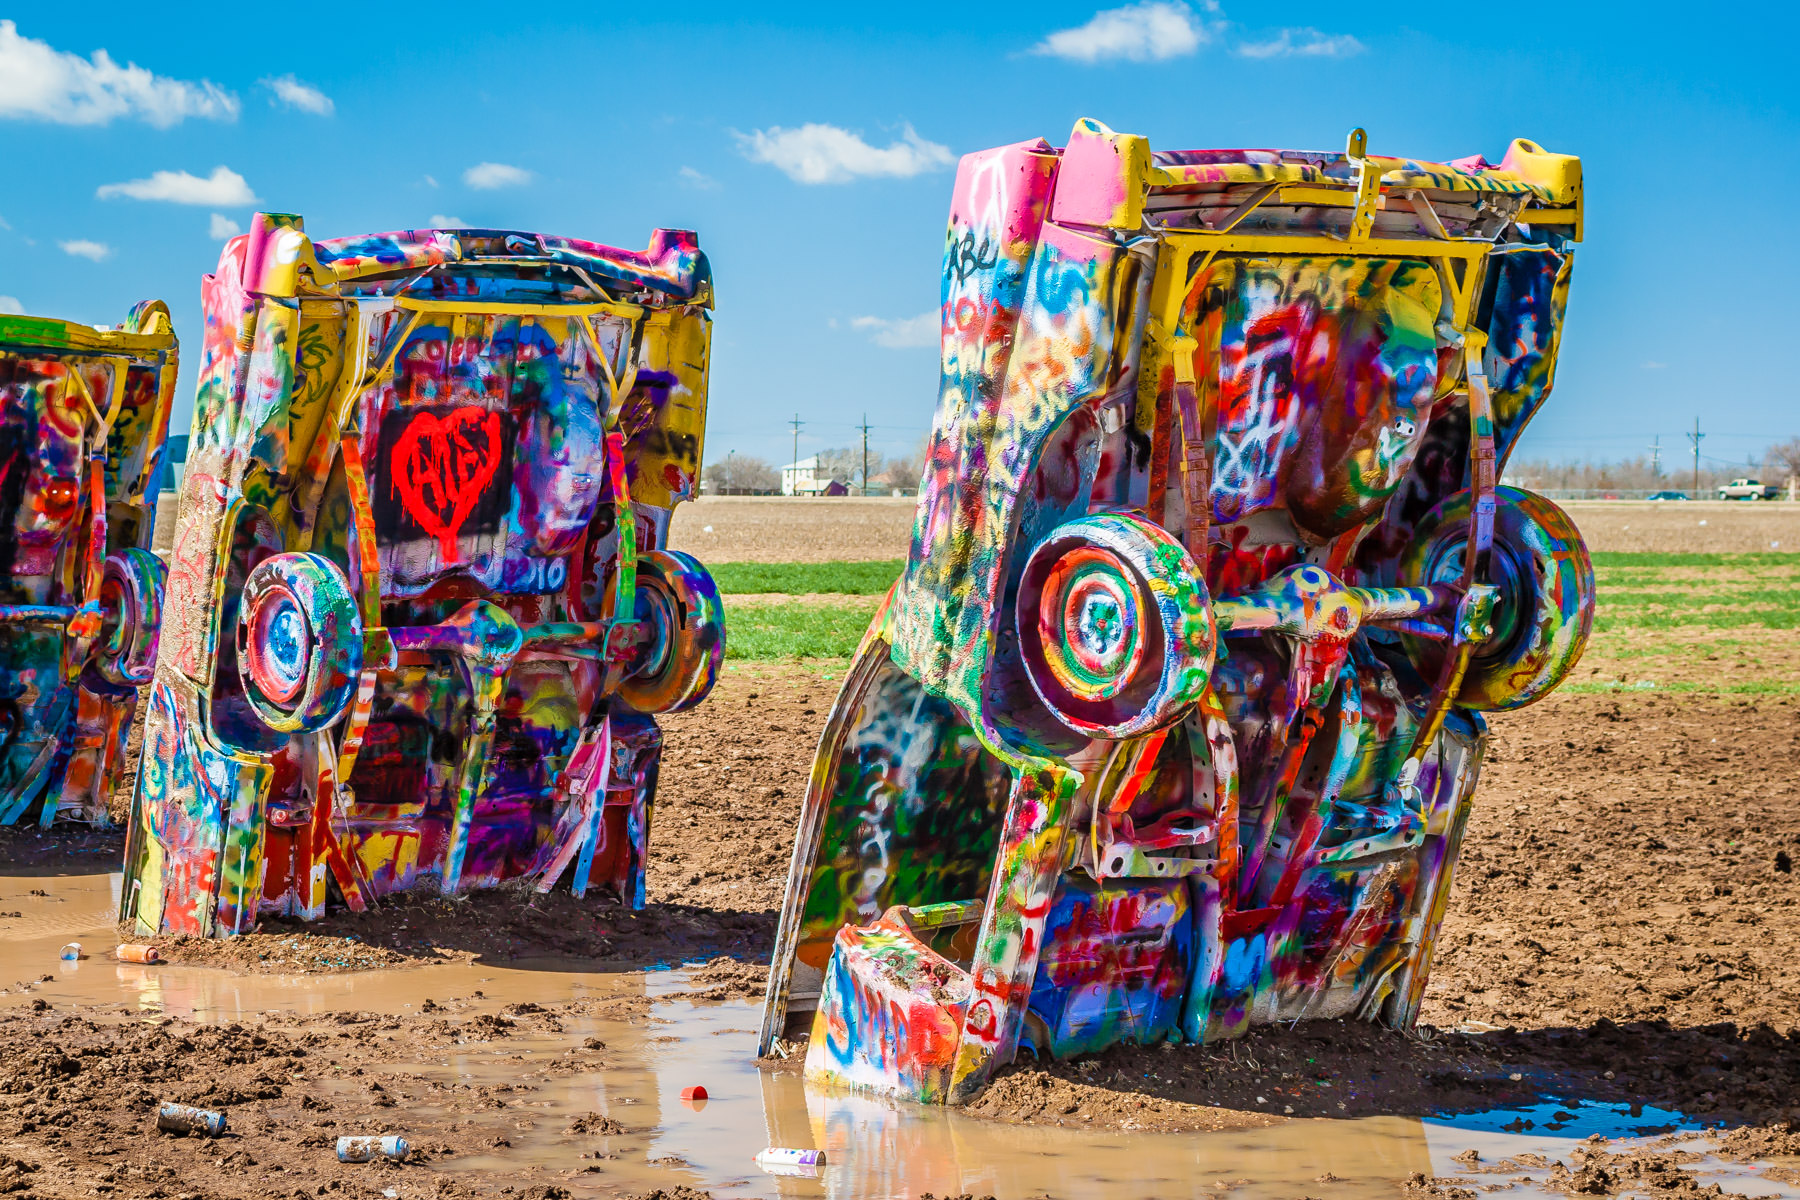 Just a few of the ten mid-Twentieth Century Cadillacs that make up Amarillo, Texas' Cadillac Ranch art installation.